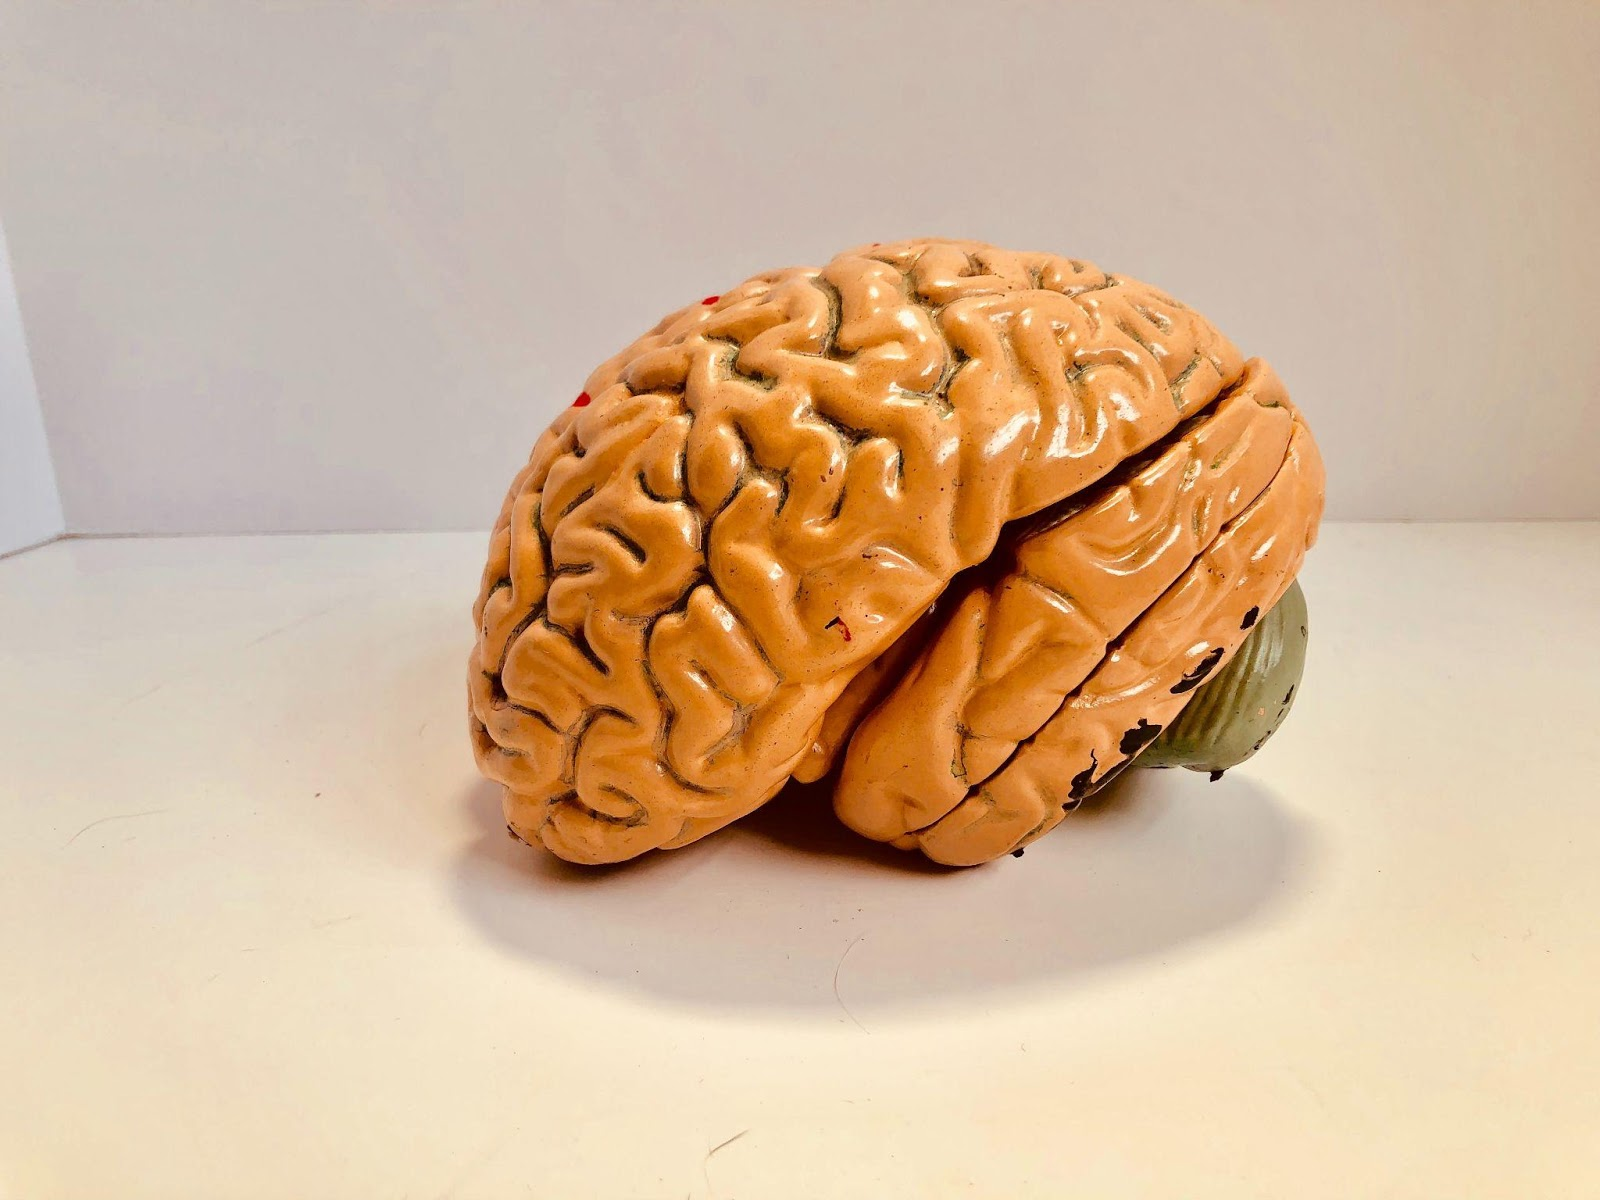 Memory Training, Training Exercises, improve memory, how to improve your memory